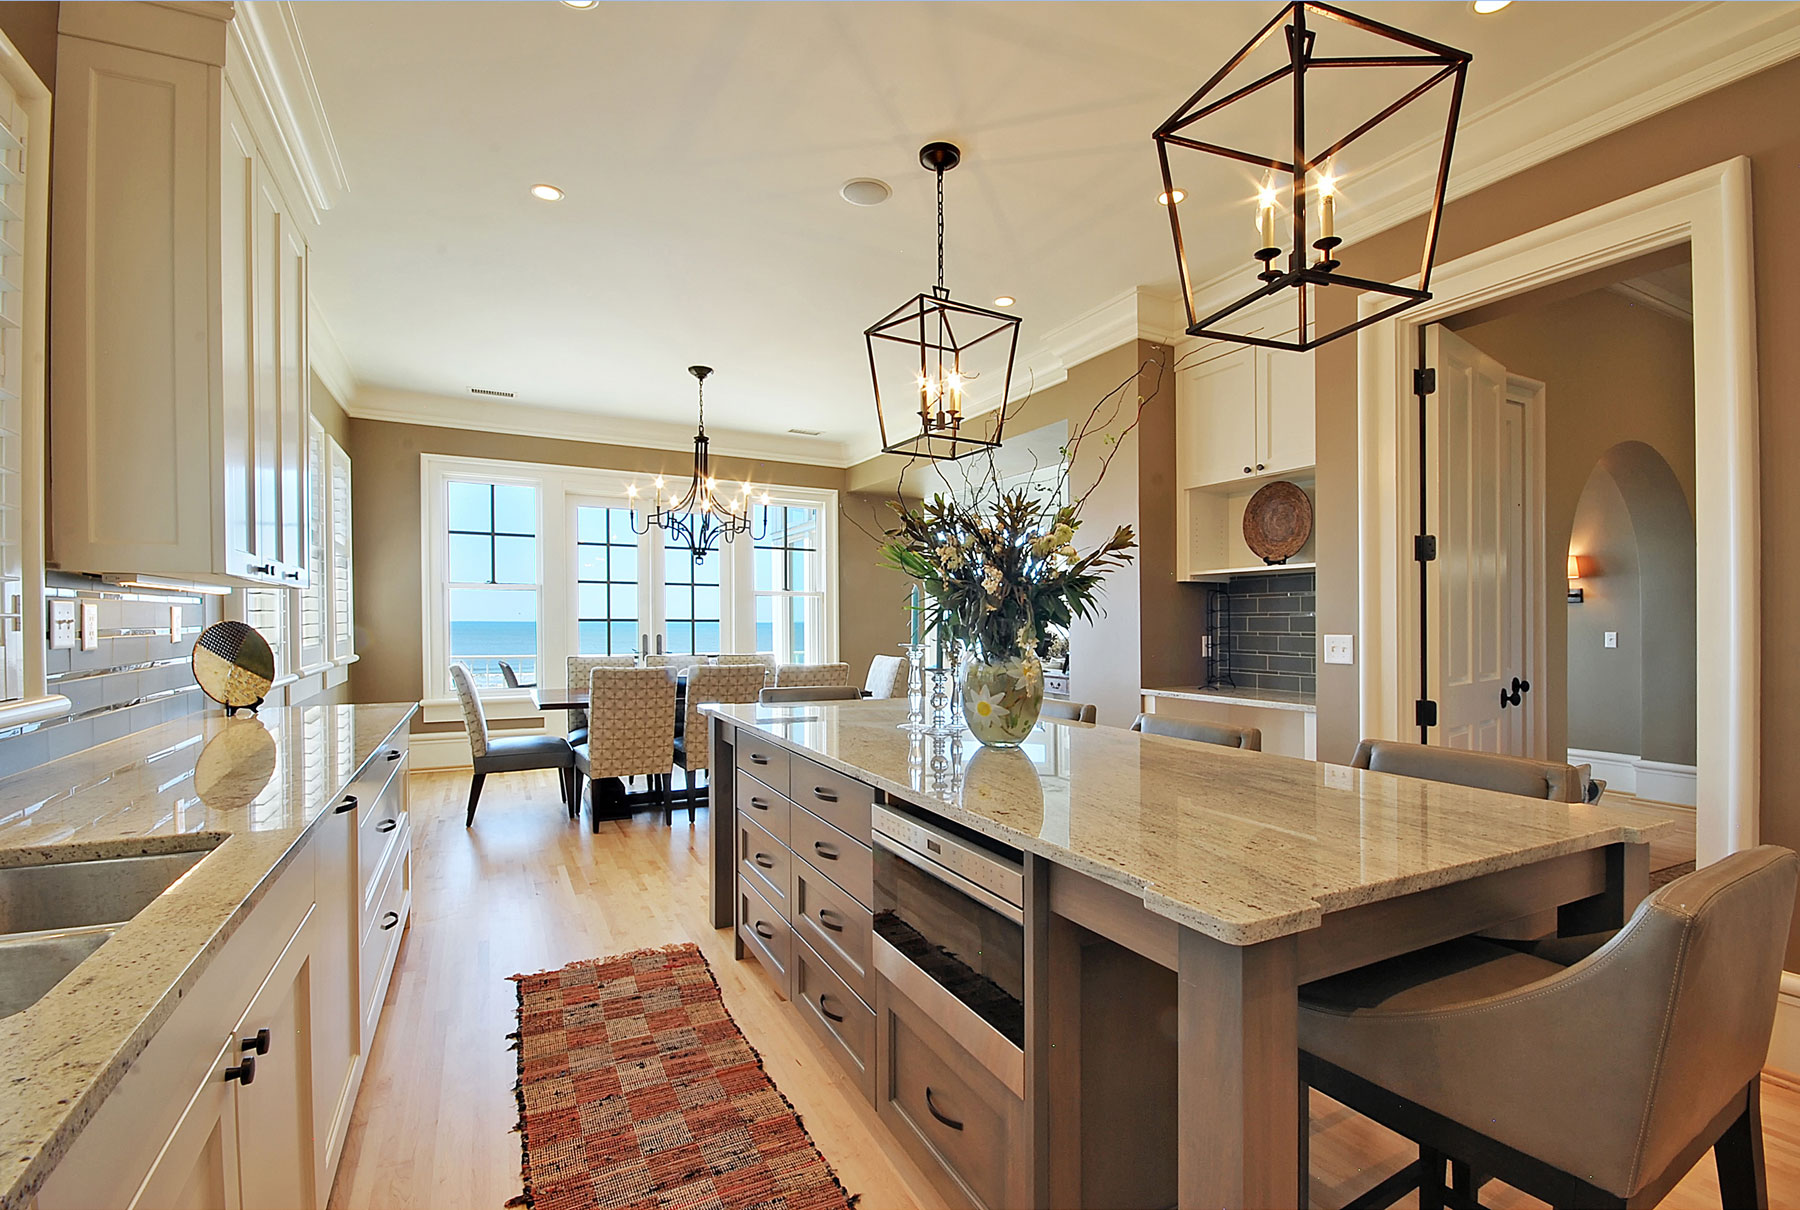 Interior Decorating Kitchen Interior Design Services Sweetgrass Construction